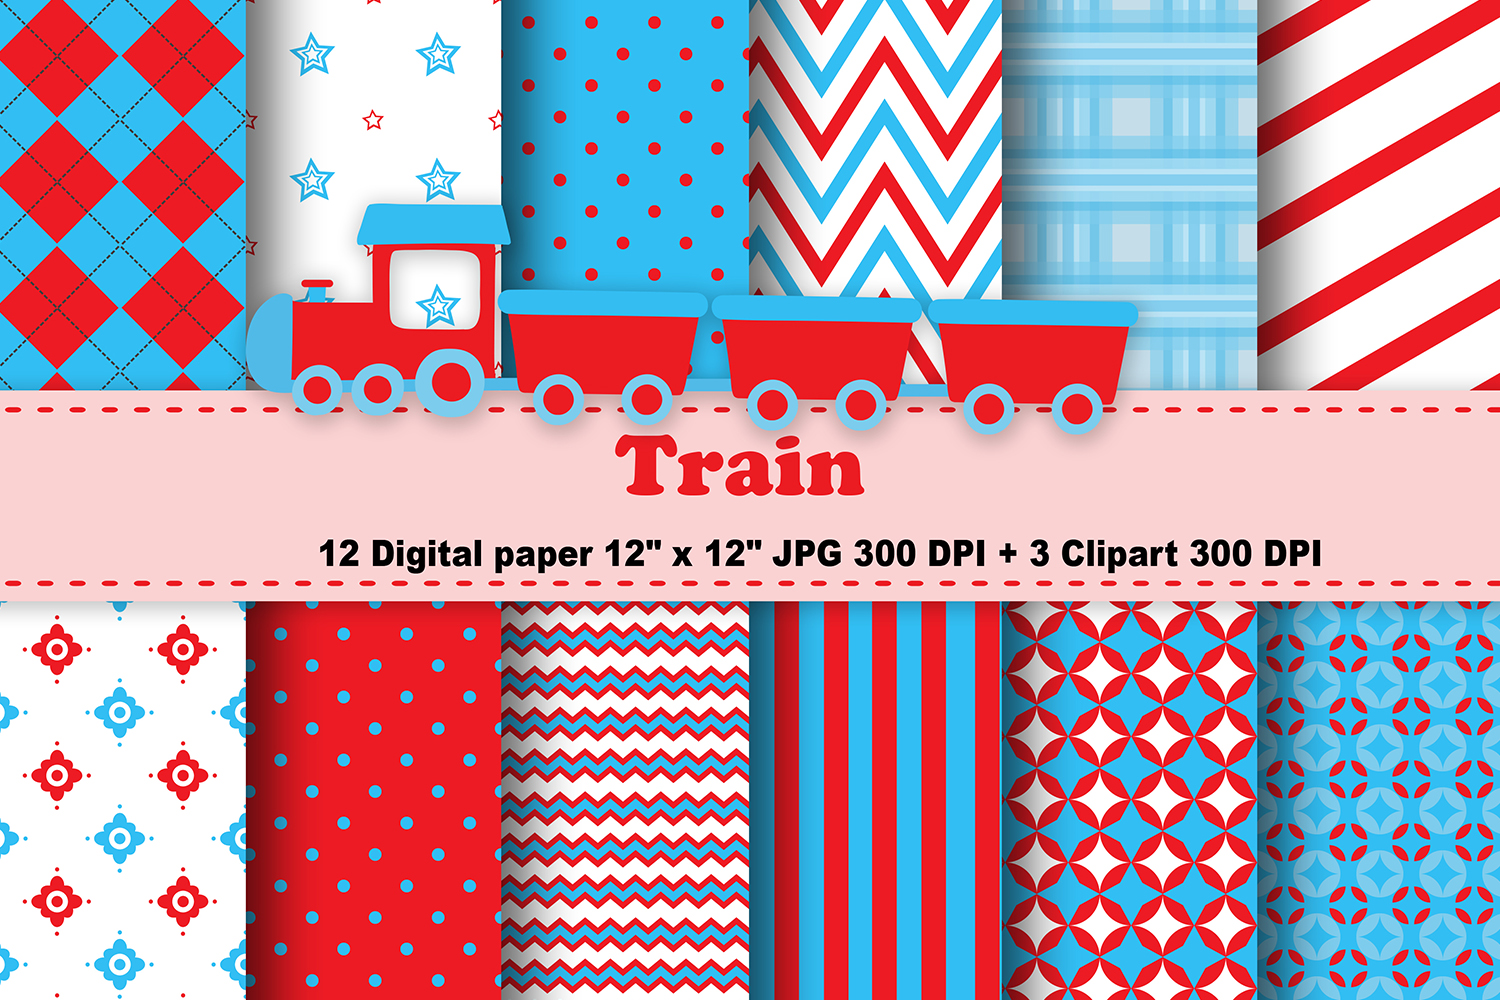 Download Free Train Digital Paper Graphic By Cosmosfineart Creative Fabrica for Cricut Explore, Silhouette and other cutting machines.